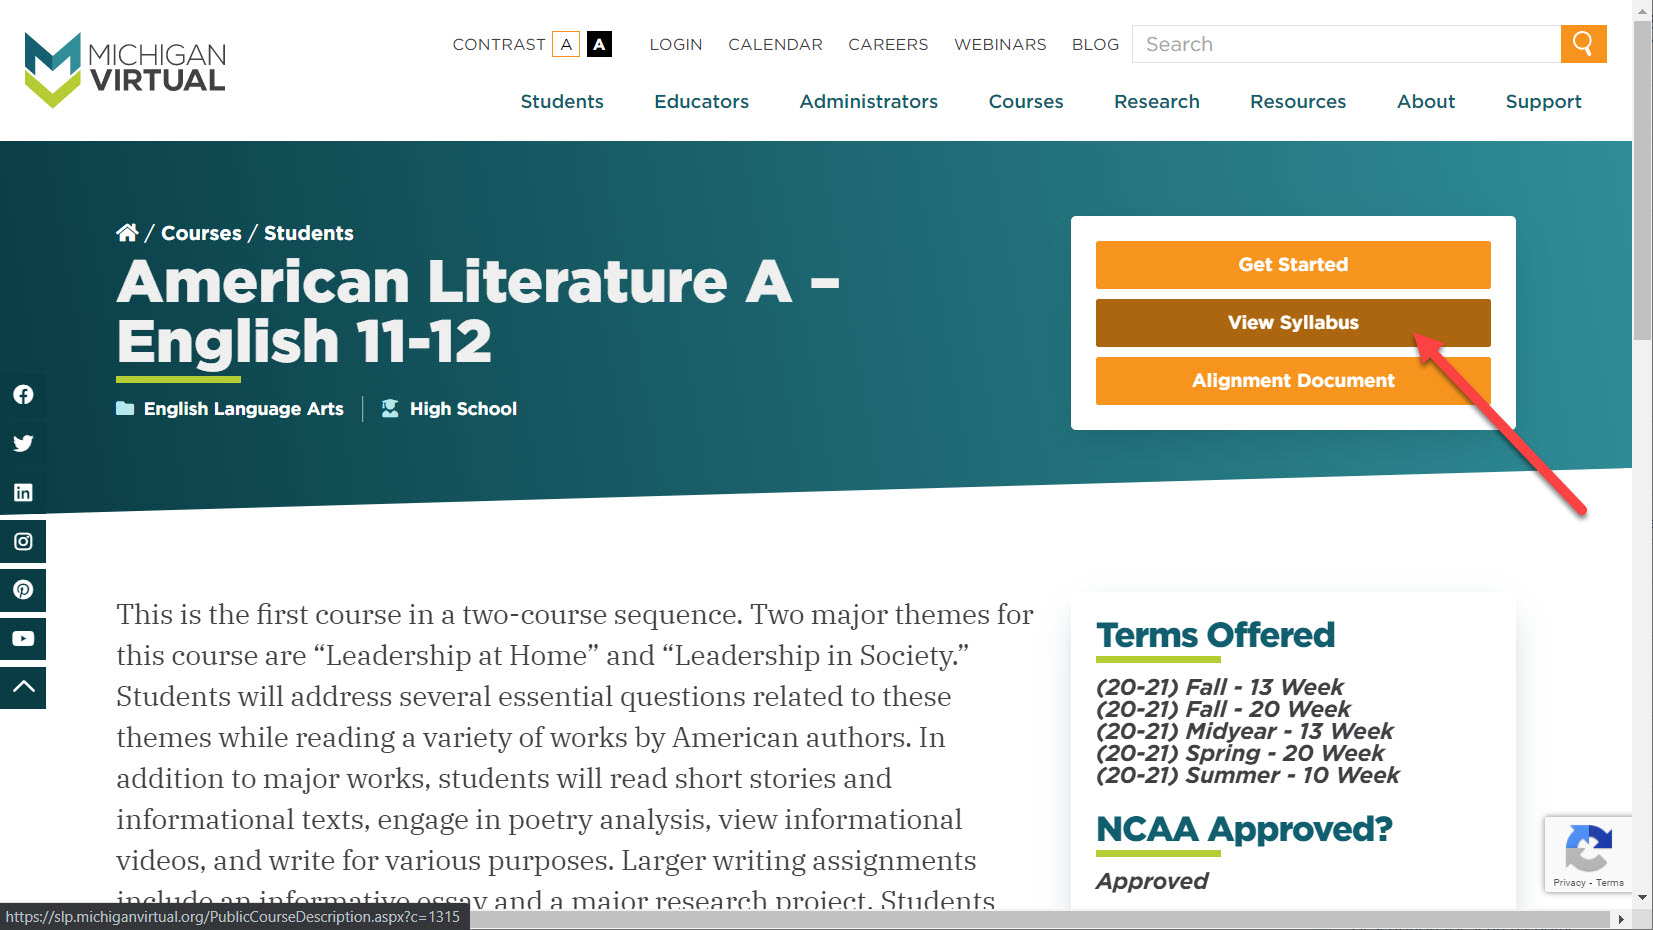 The American Literature Course details page is shown. On the top right corner there are three buttons, get started, view syllabus and alignment document. An arrow points to the View Syllabus button.